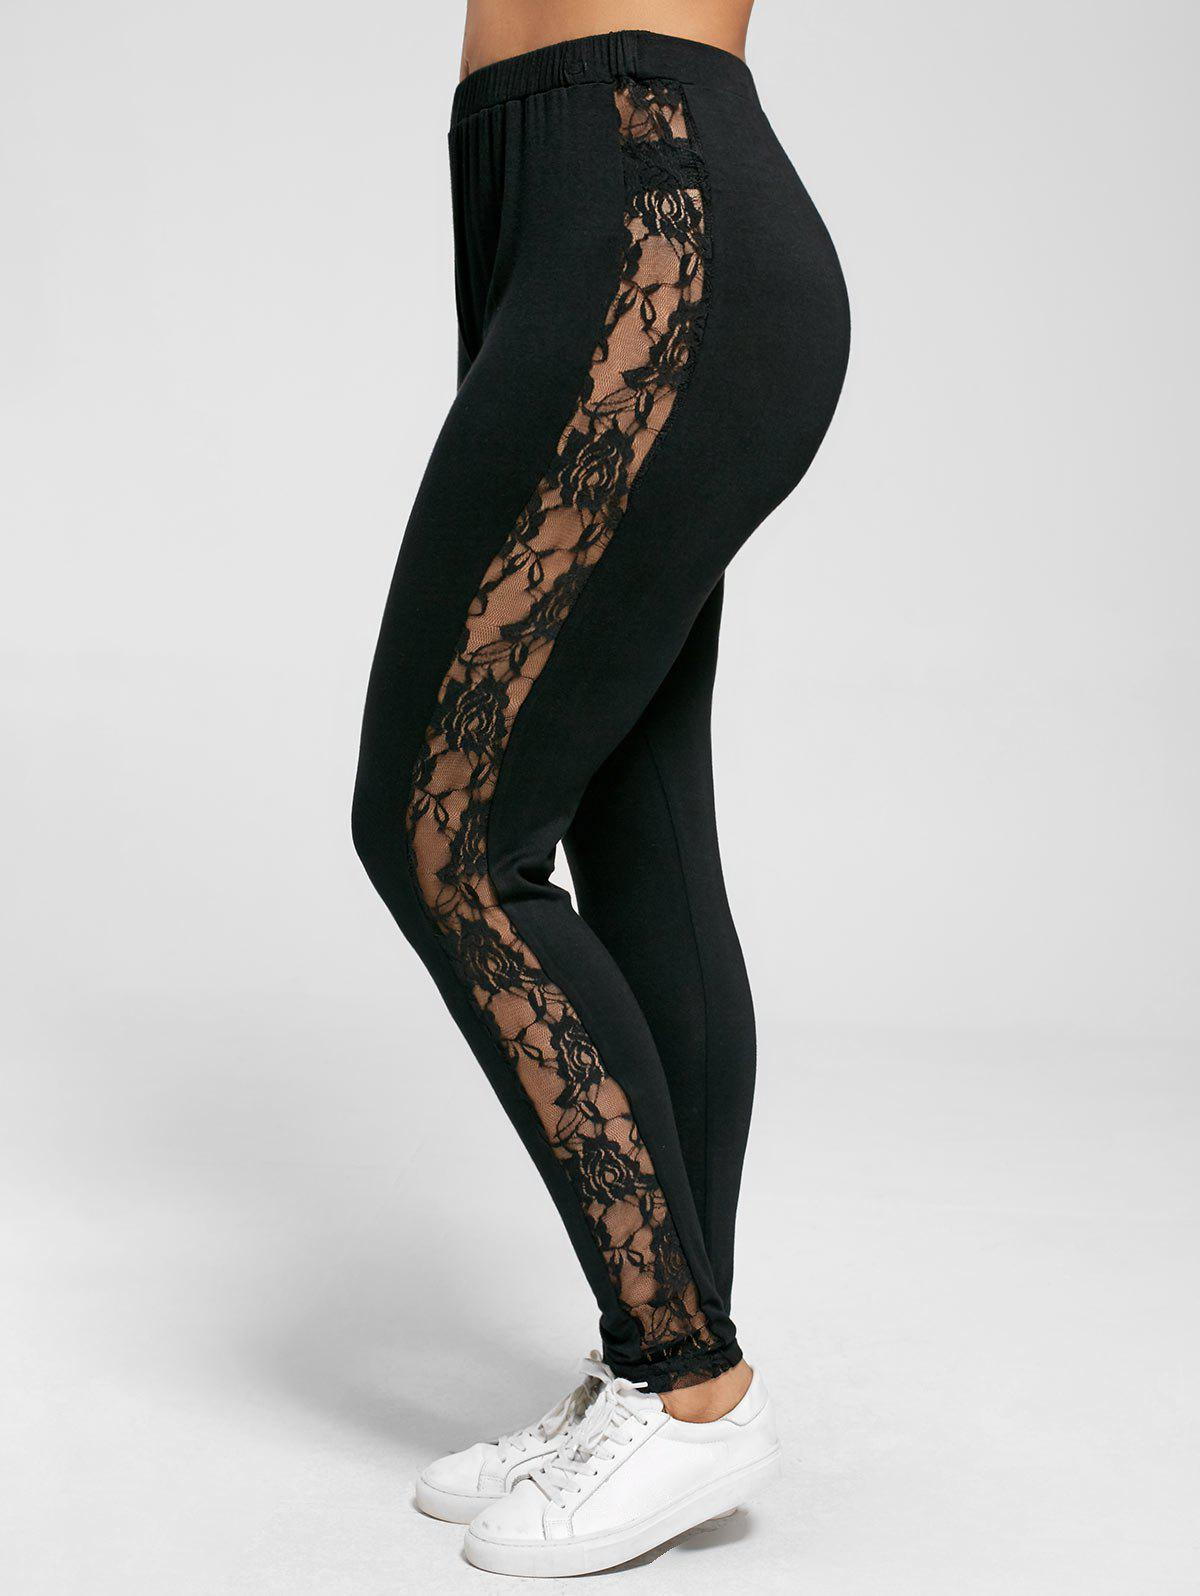 Plus Size Lace Insert Sheer Leggings plus size lace insert sheer leggings